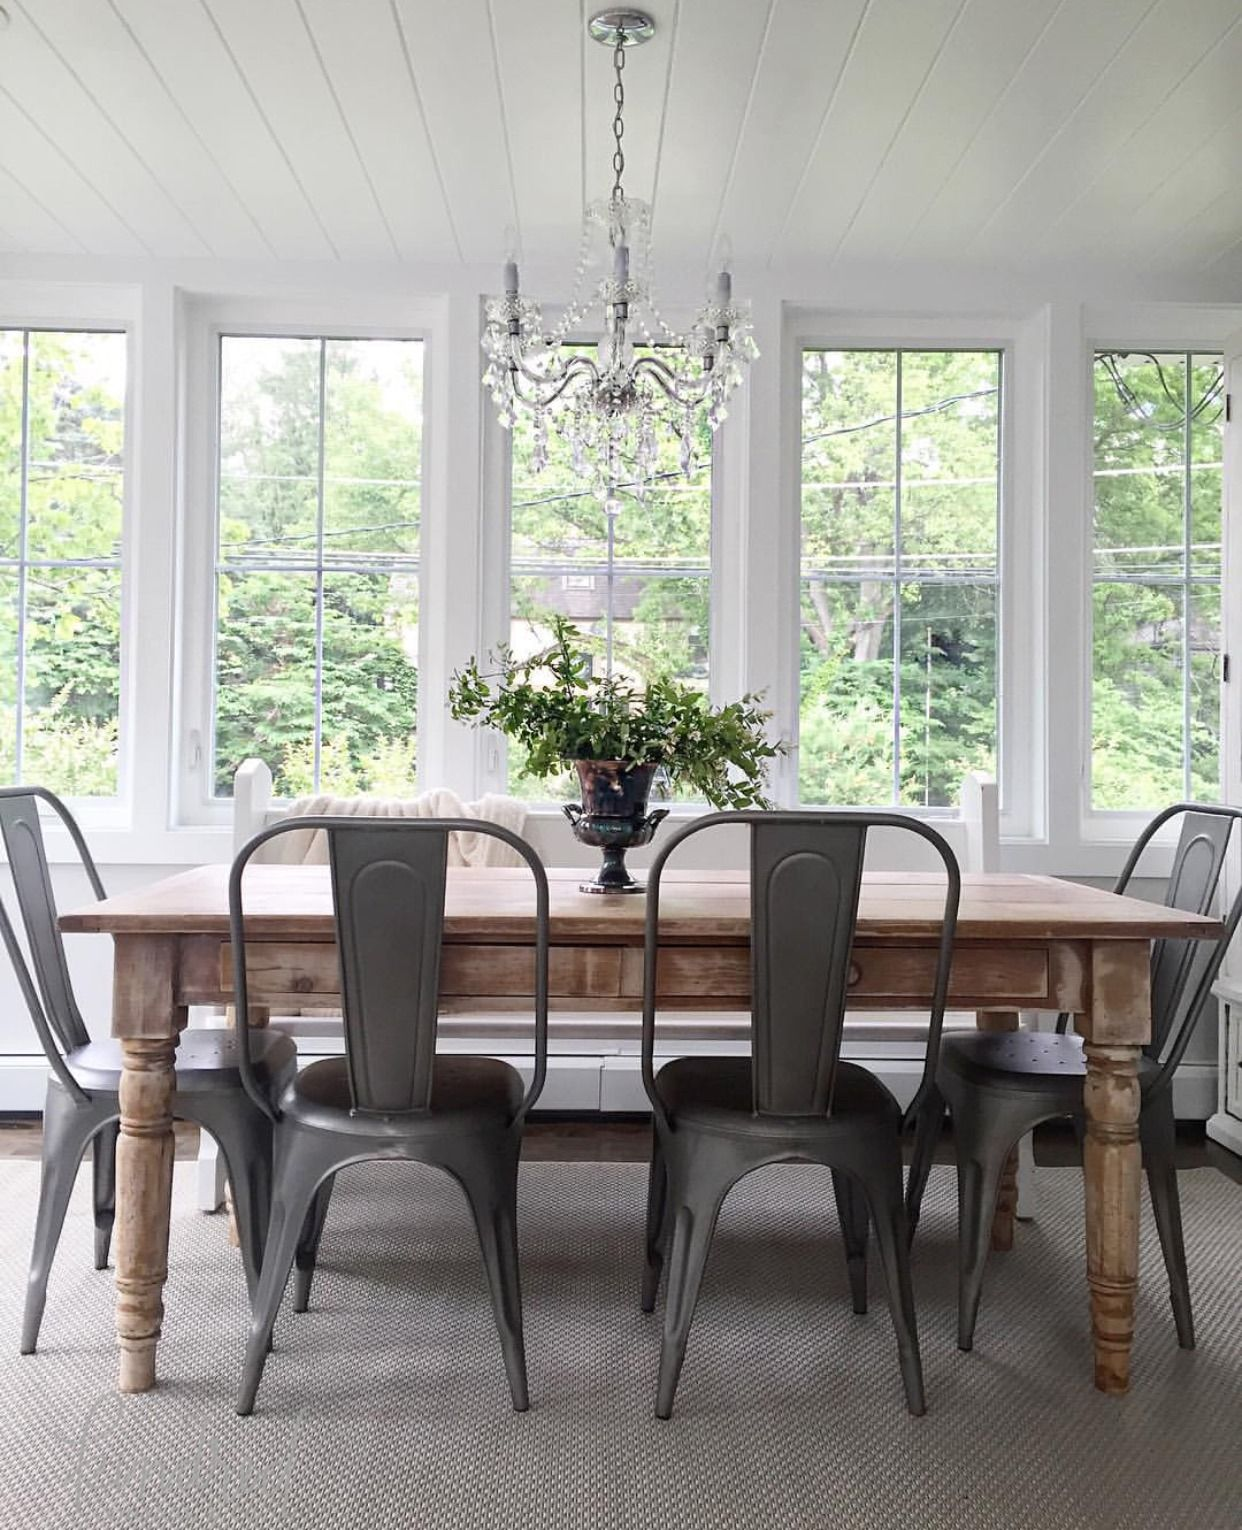 Kindred vintage, farmhouse style - Kindred Vintage, Farmhouse Style *Home & Design Inspiration